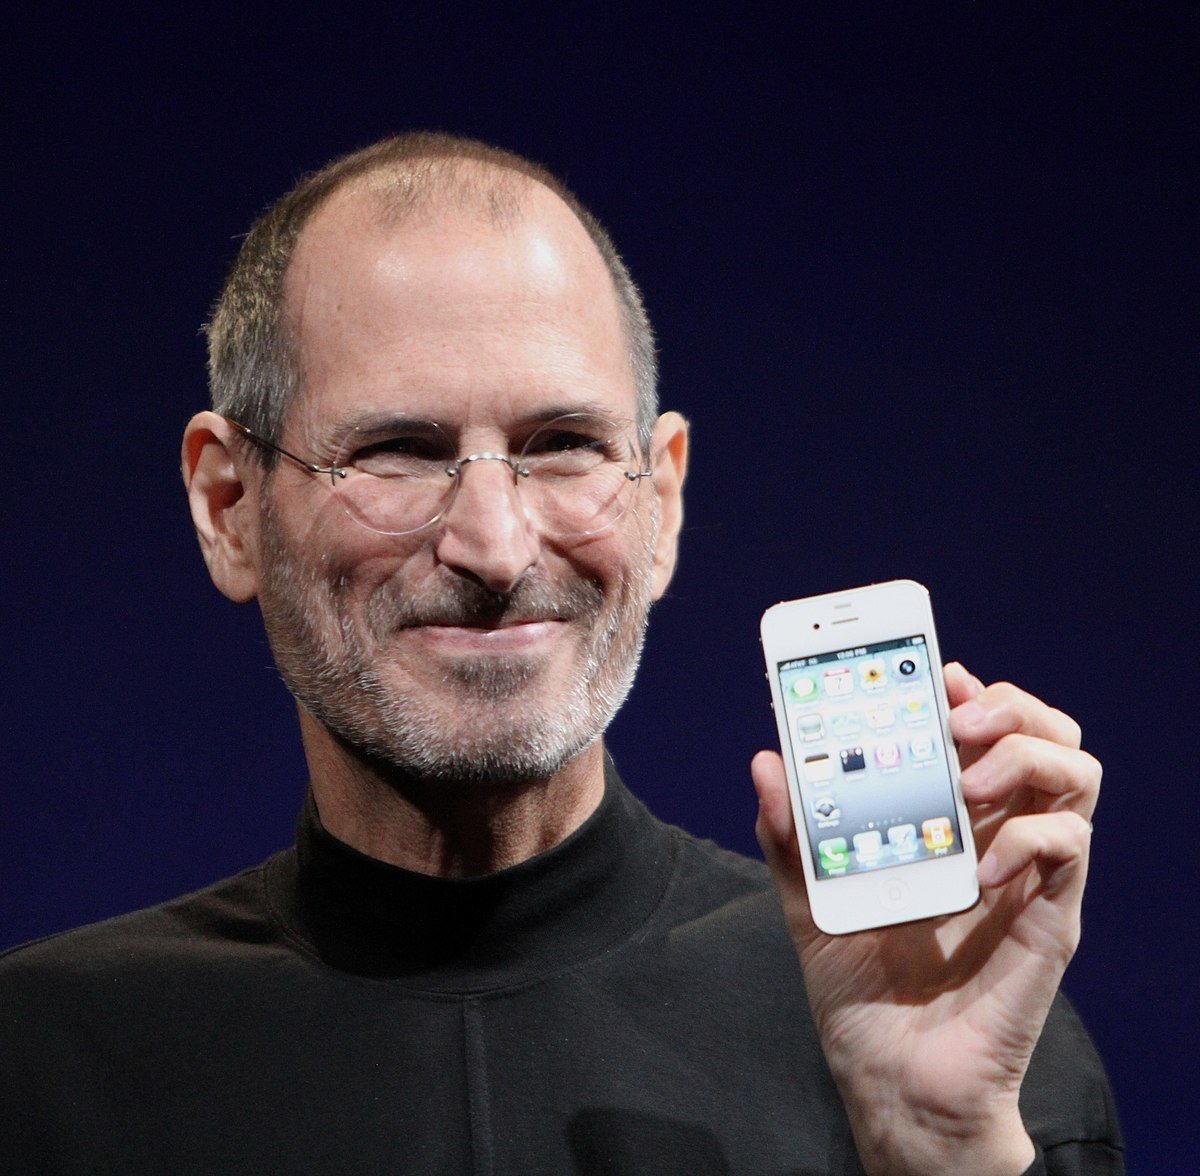 A Gift Steve Jobs Left for Shop Owners